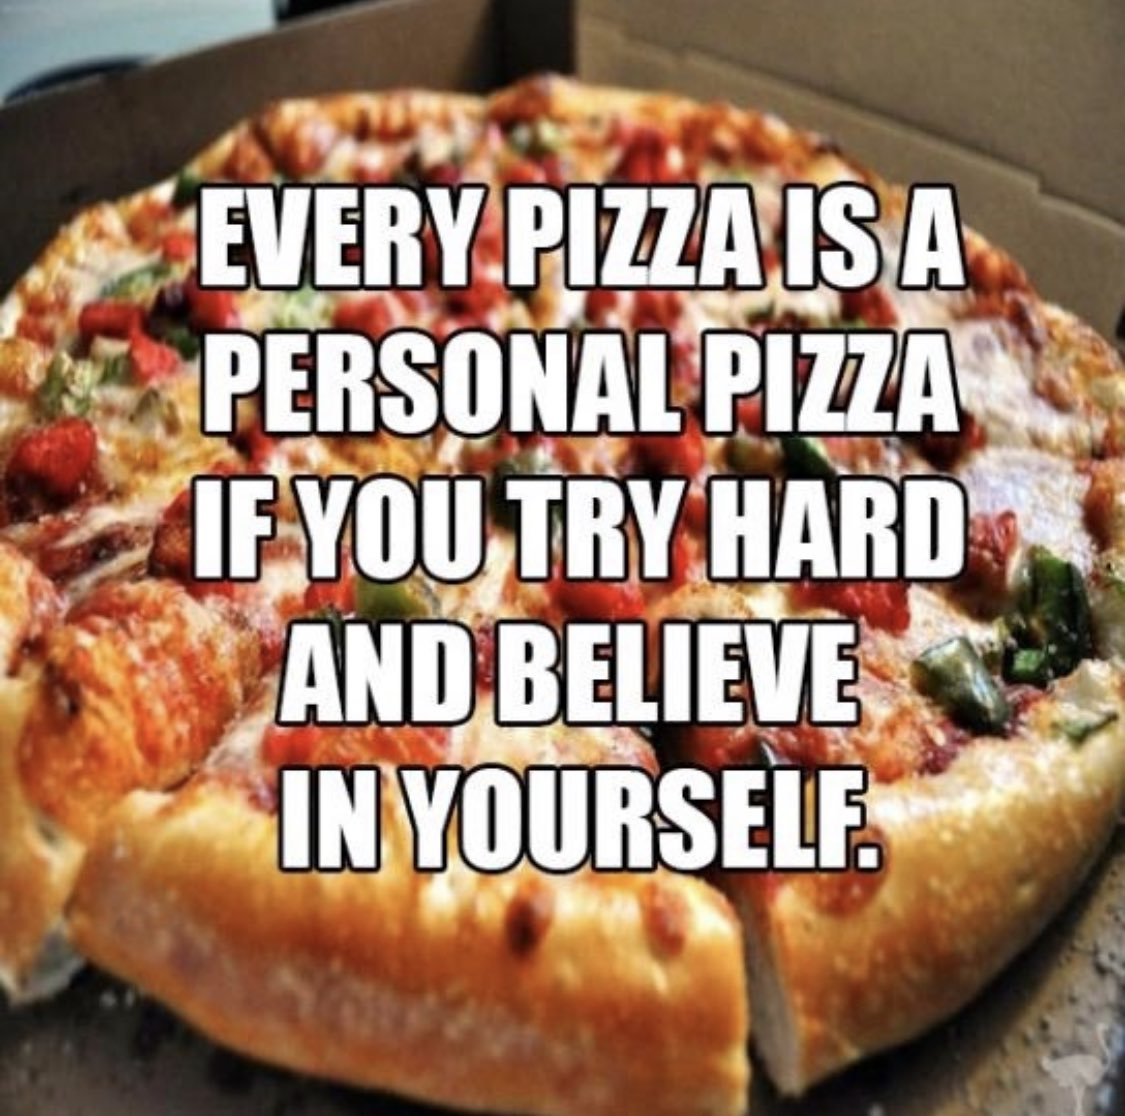 Morning everyone #Morninggg #wednesdaythought #pizza #Foodie #Food #breakfast #Motivation  #Smile